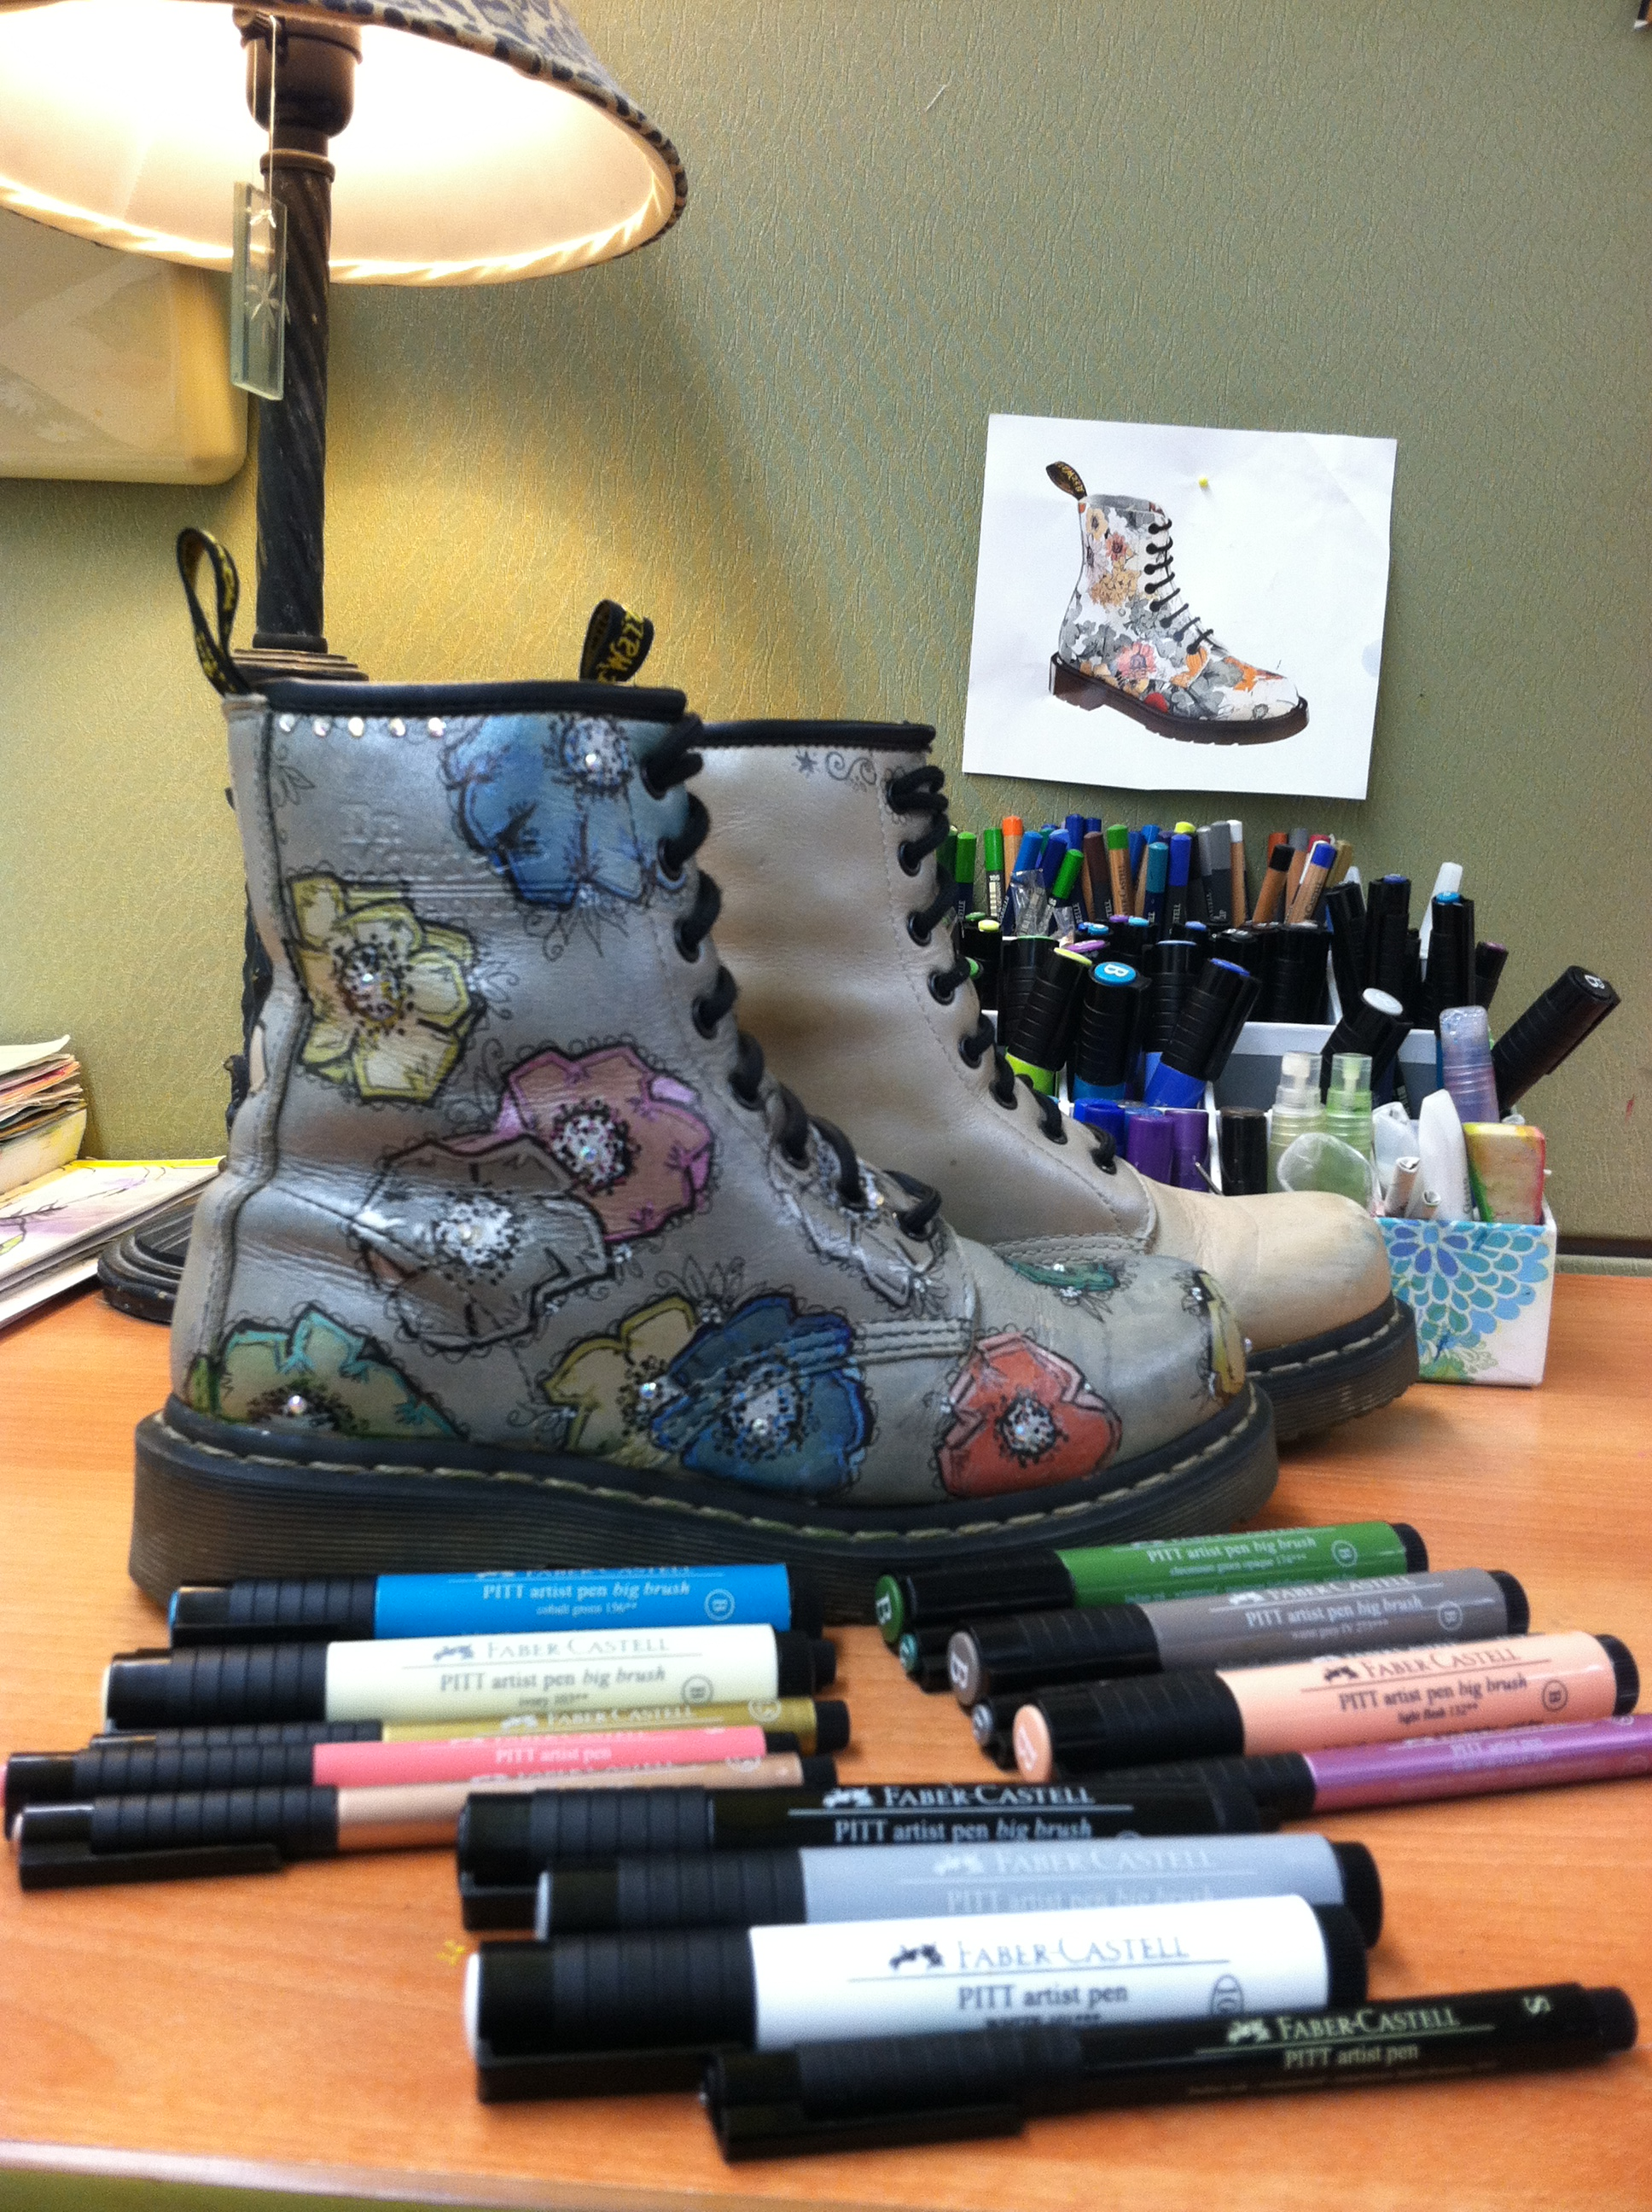 Drawn shoe old pair Leather upcycled an old Martens